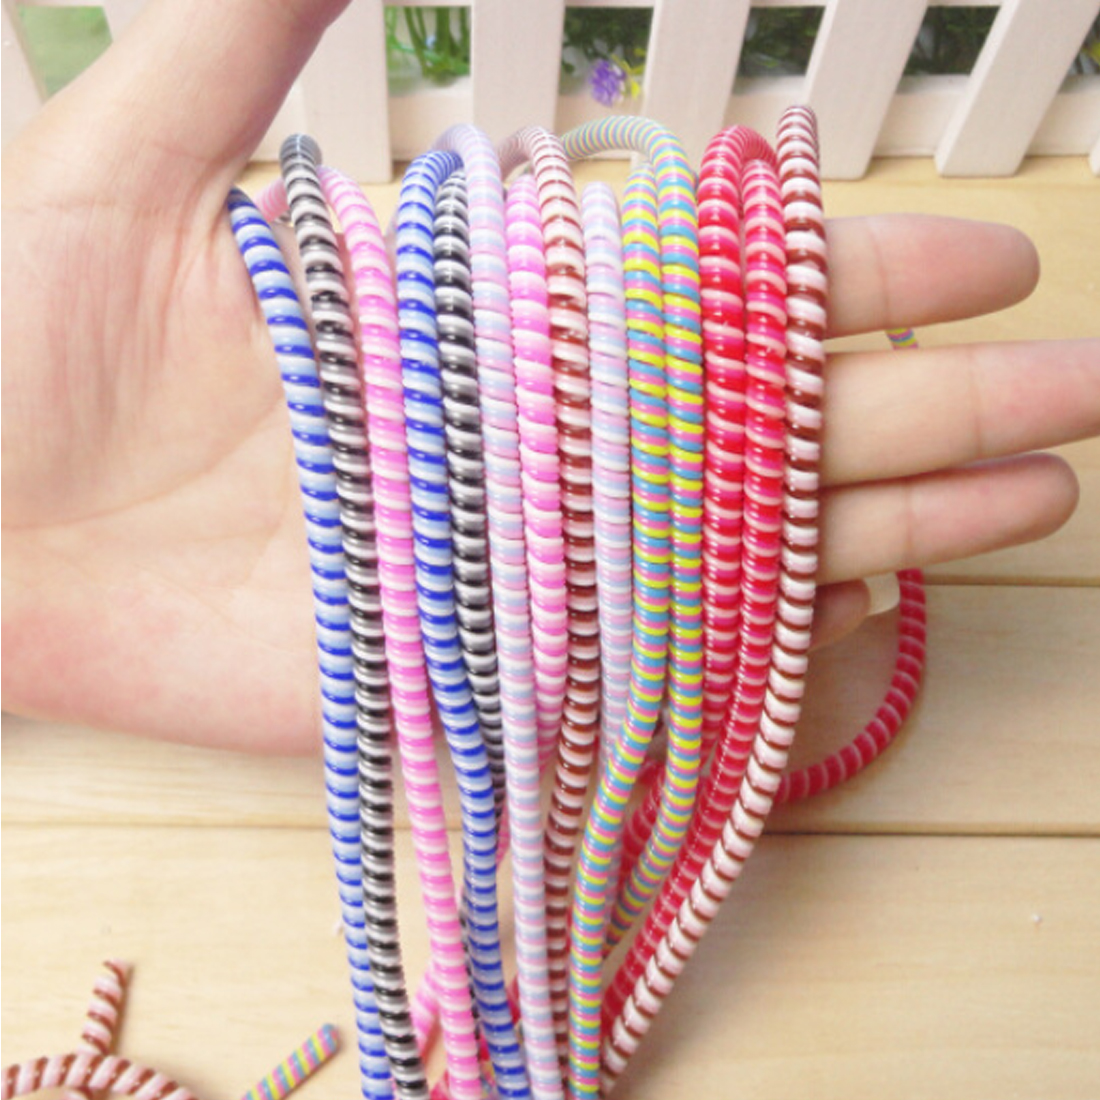 Clever 1.5m Mix Color Phone Wire Cord Rope Protector Usb Charging Cable Bobbin Winder Data Line Earphone Cover Suit Spring Sleeve Twine Cable Winder Accessories & Parts